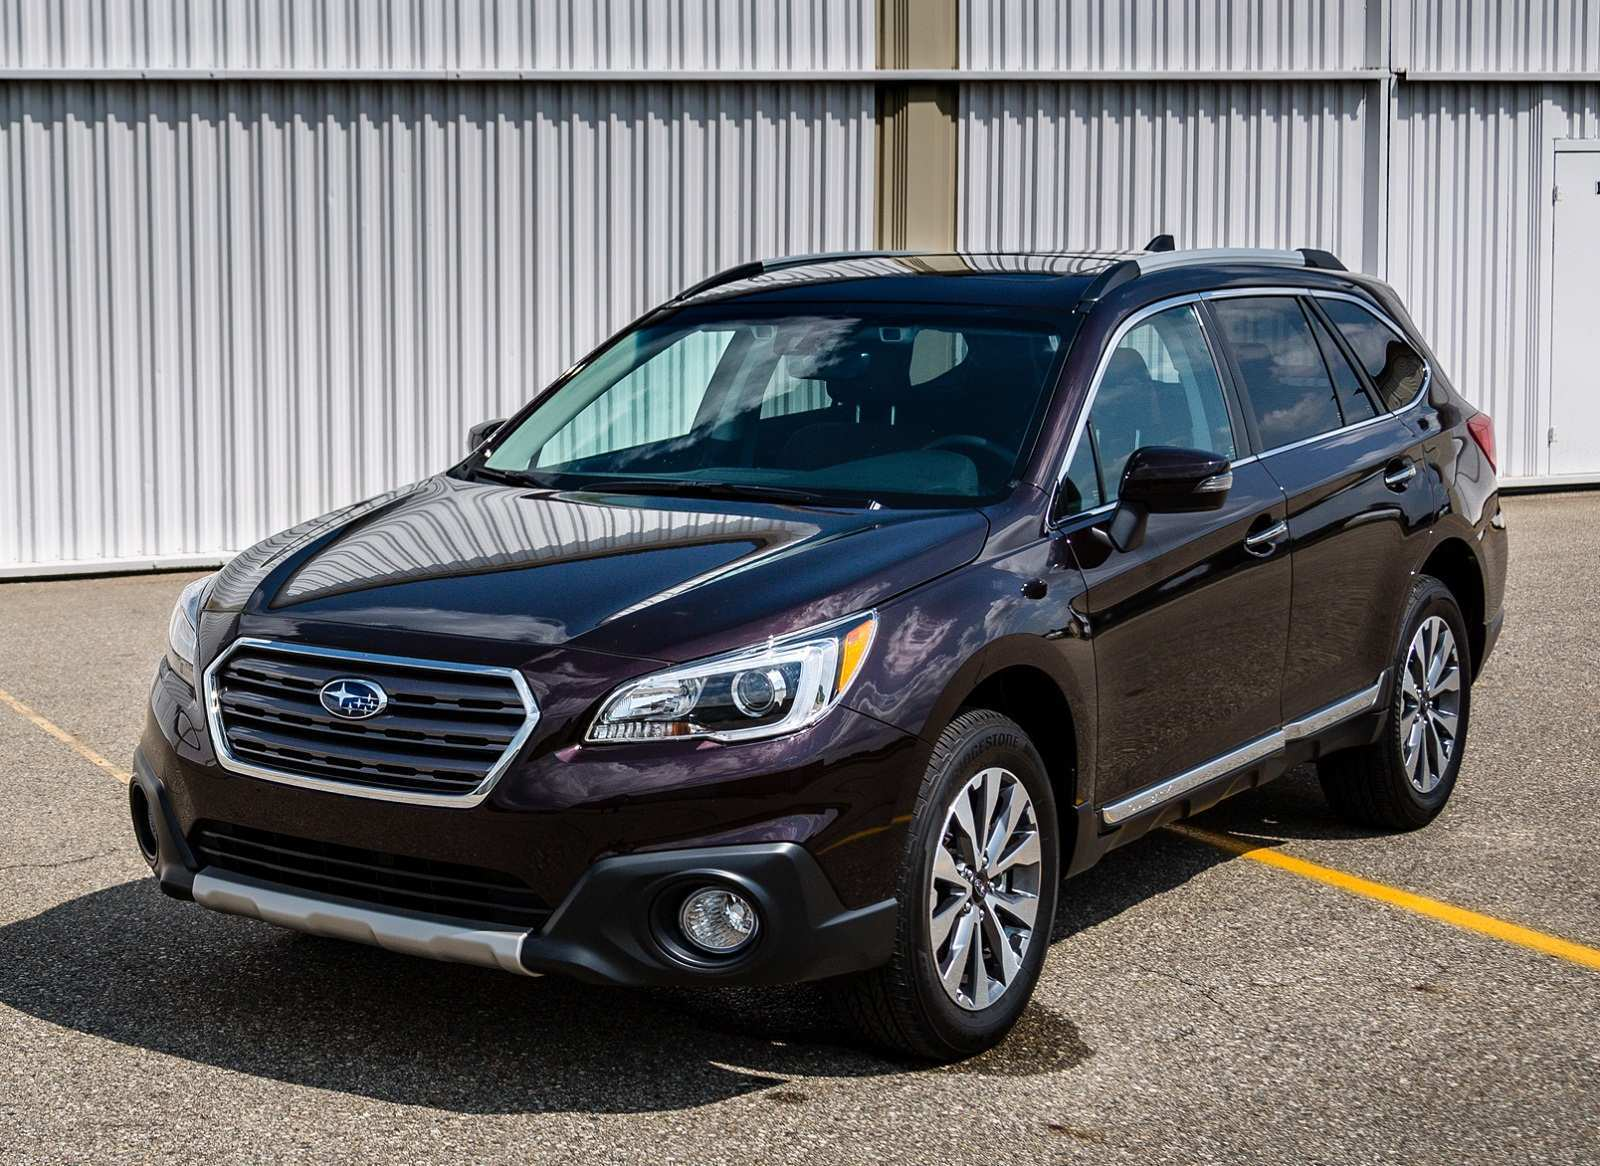 27 Best Review 2019 Subaru Outback Redesign History for 2019 Subaru Outback Redesign